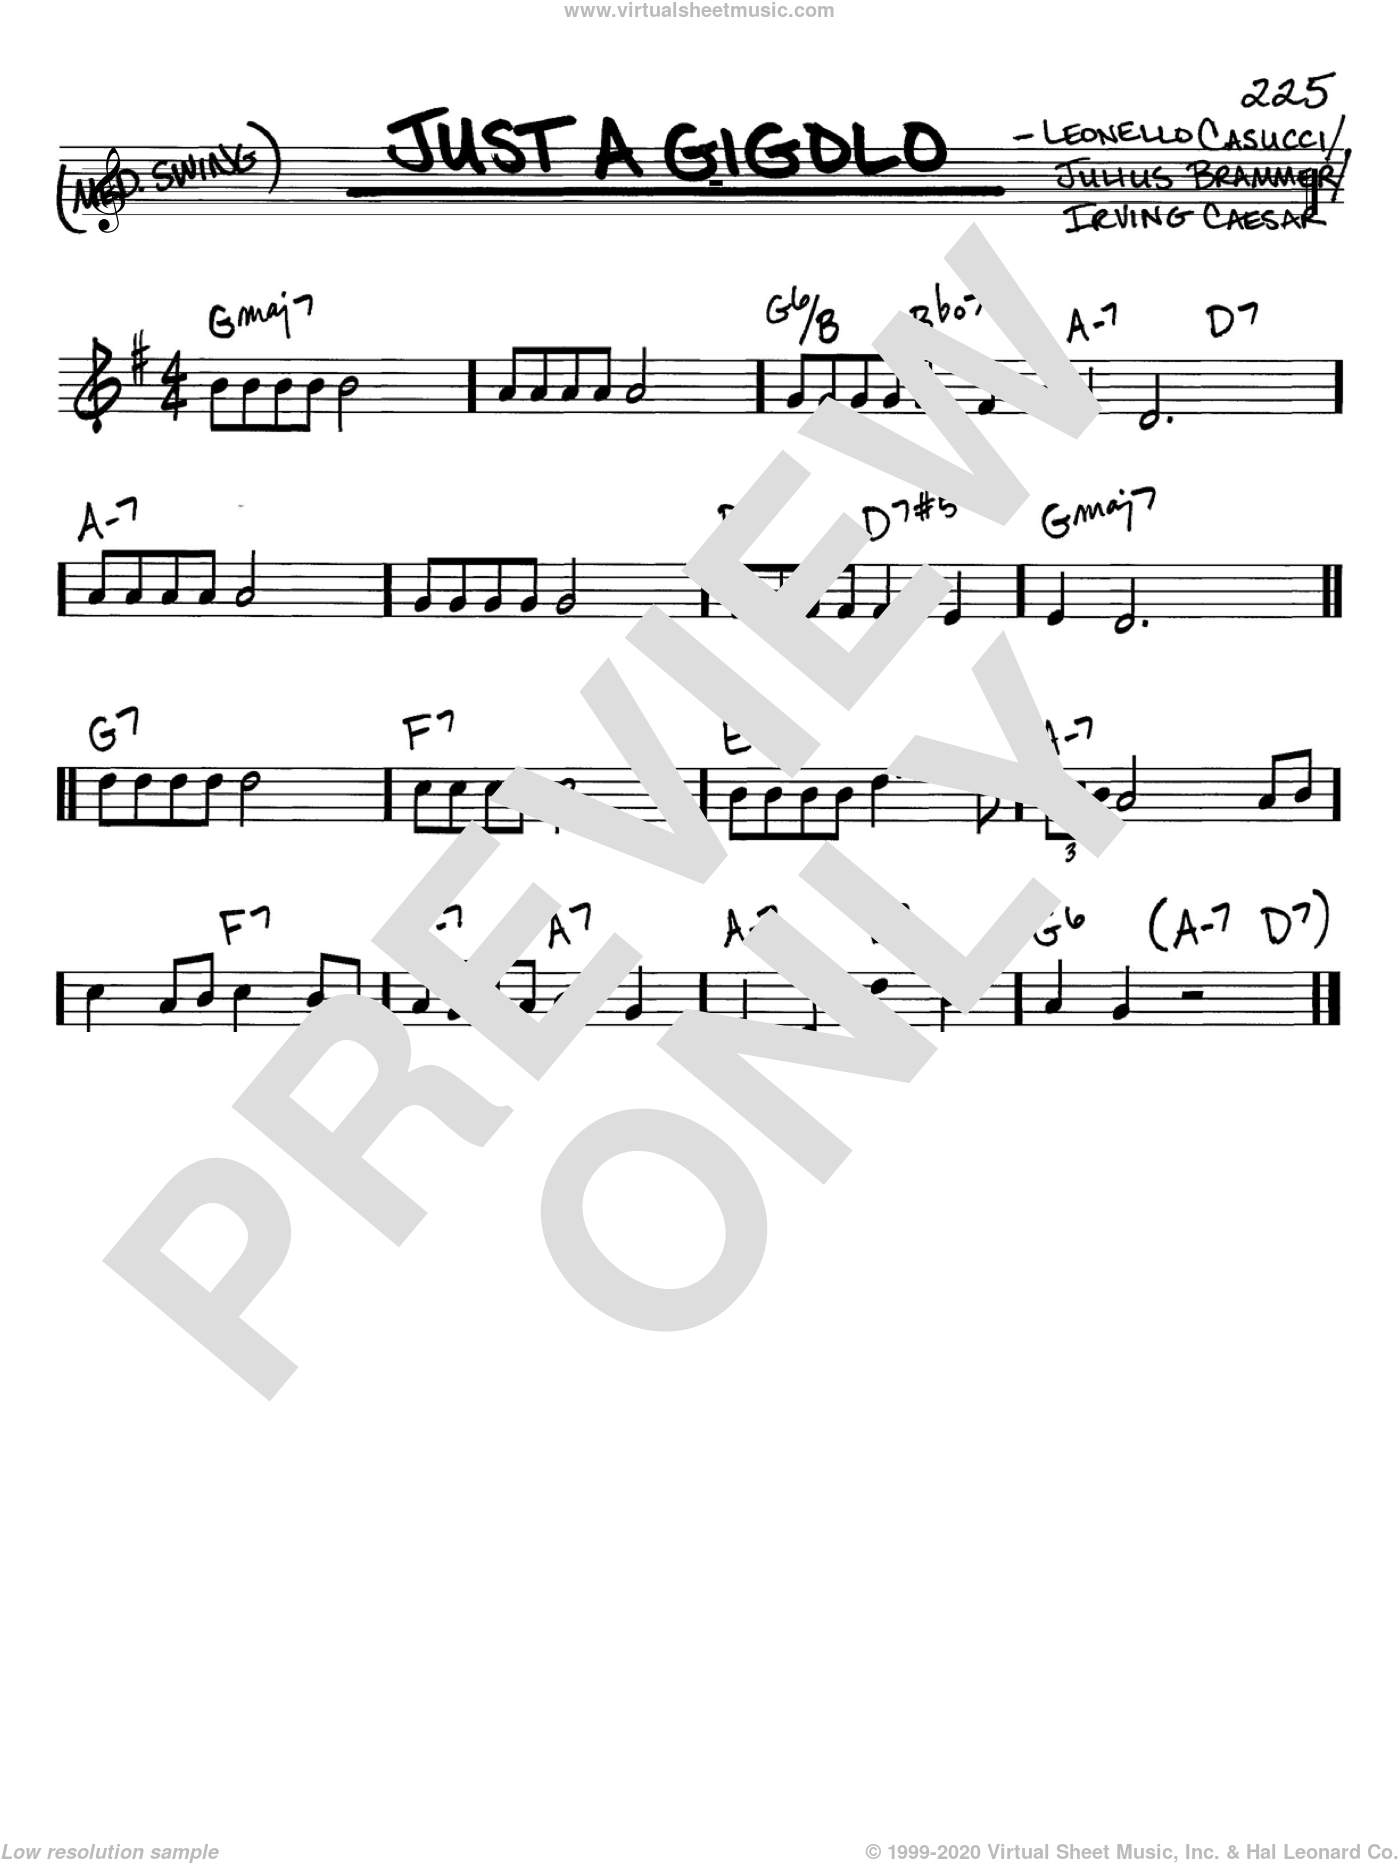 Just A Gigolo sheet music for voice and other instruments (C) by Leonello Casucci